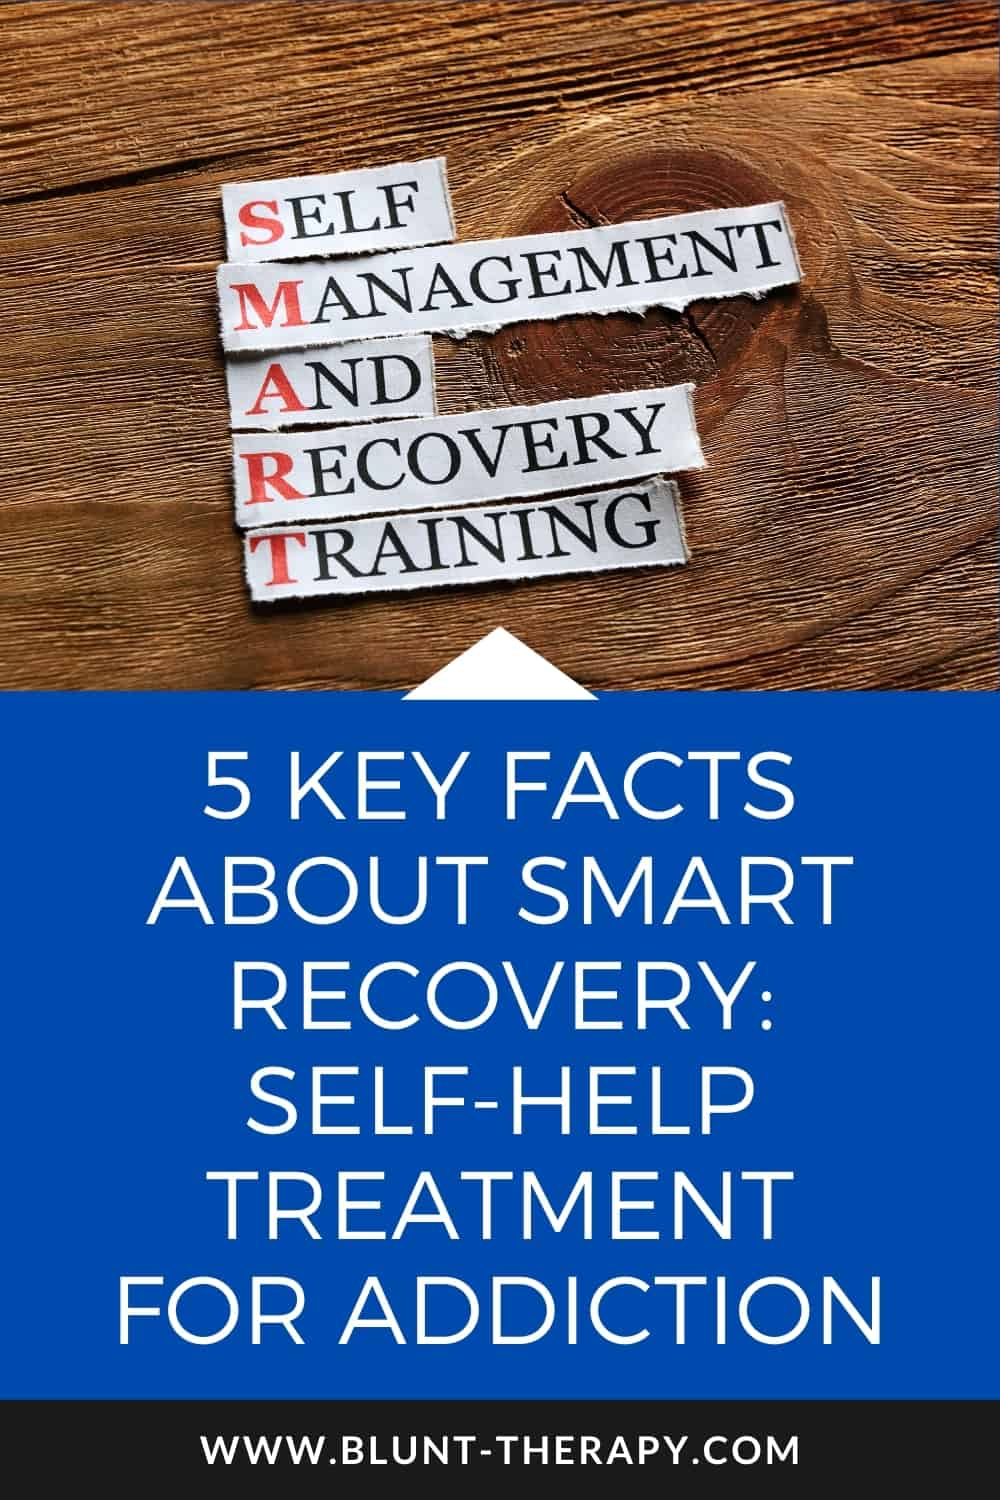 5 Key Facts About SMART Recovery A Self-Help Treatment Approach For Addiction